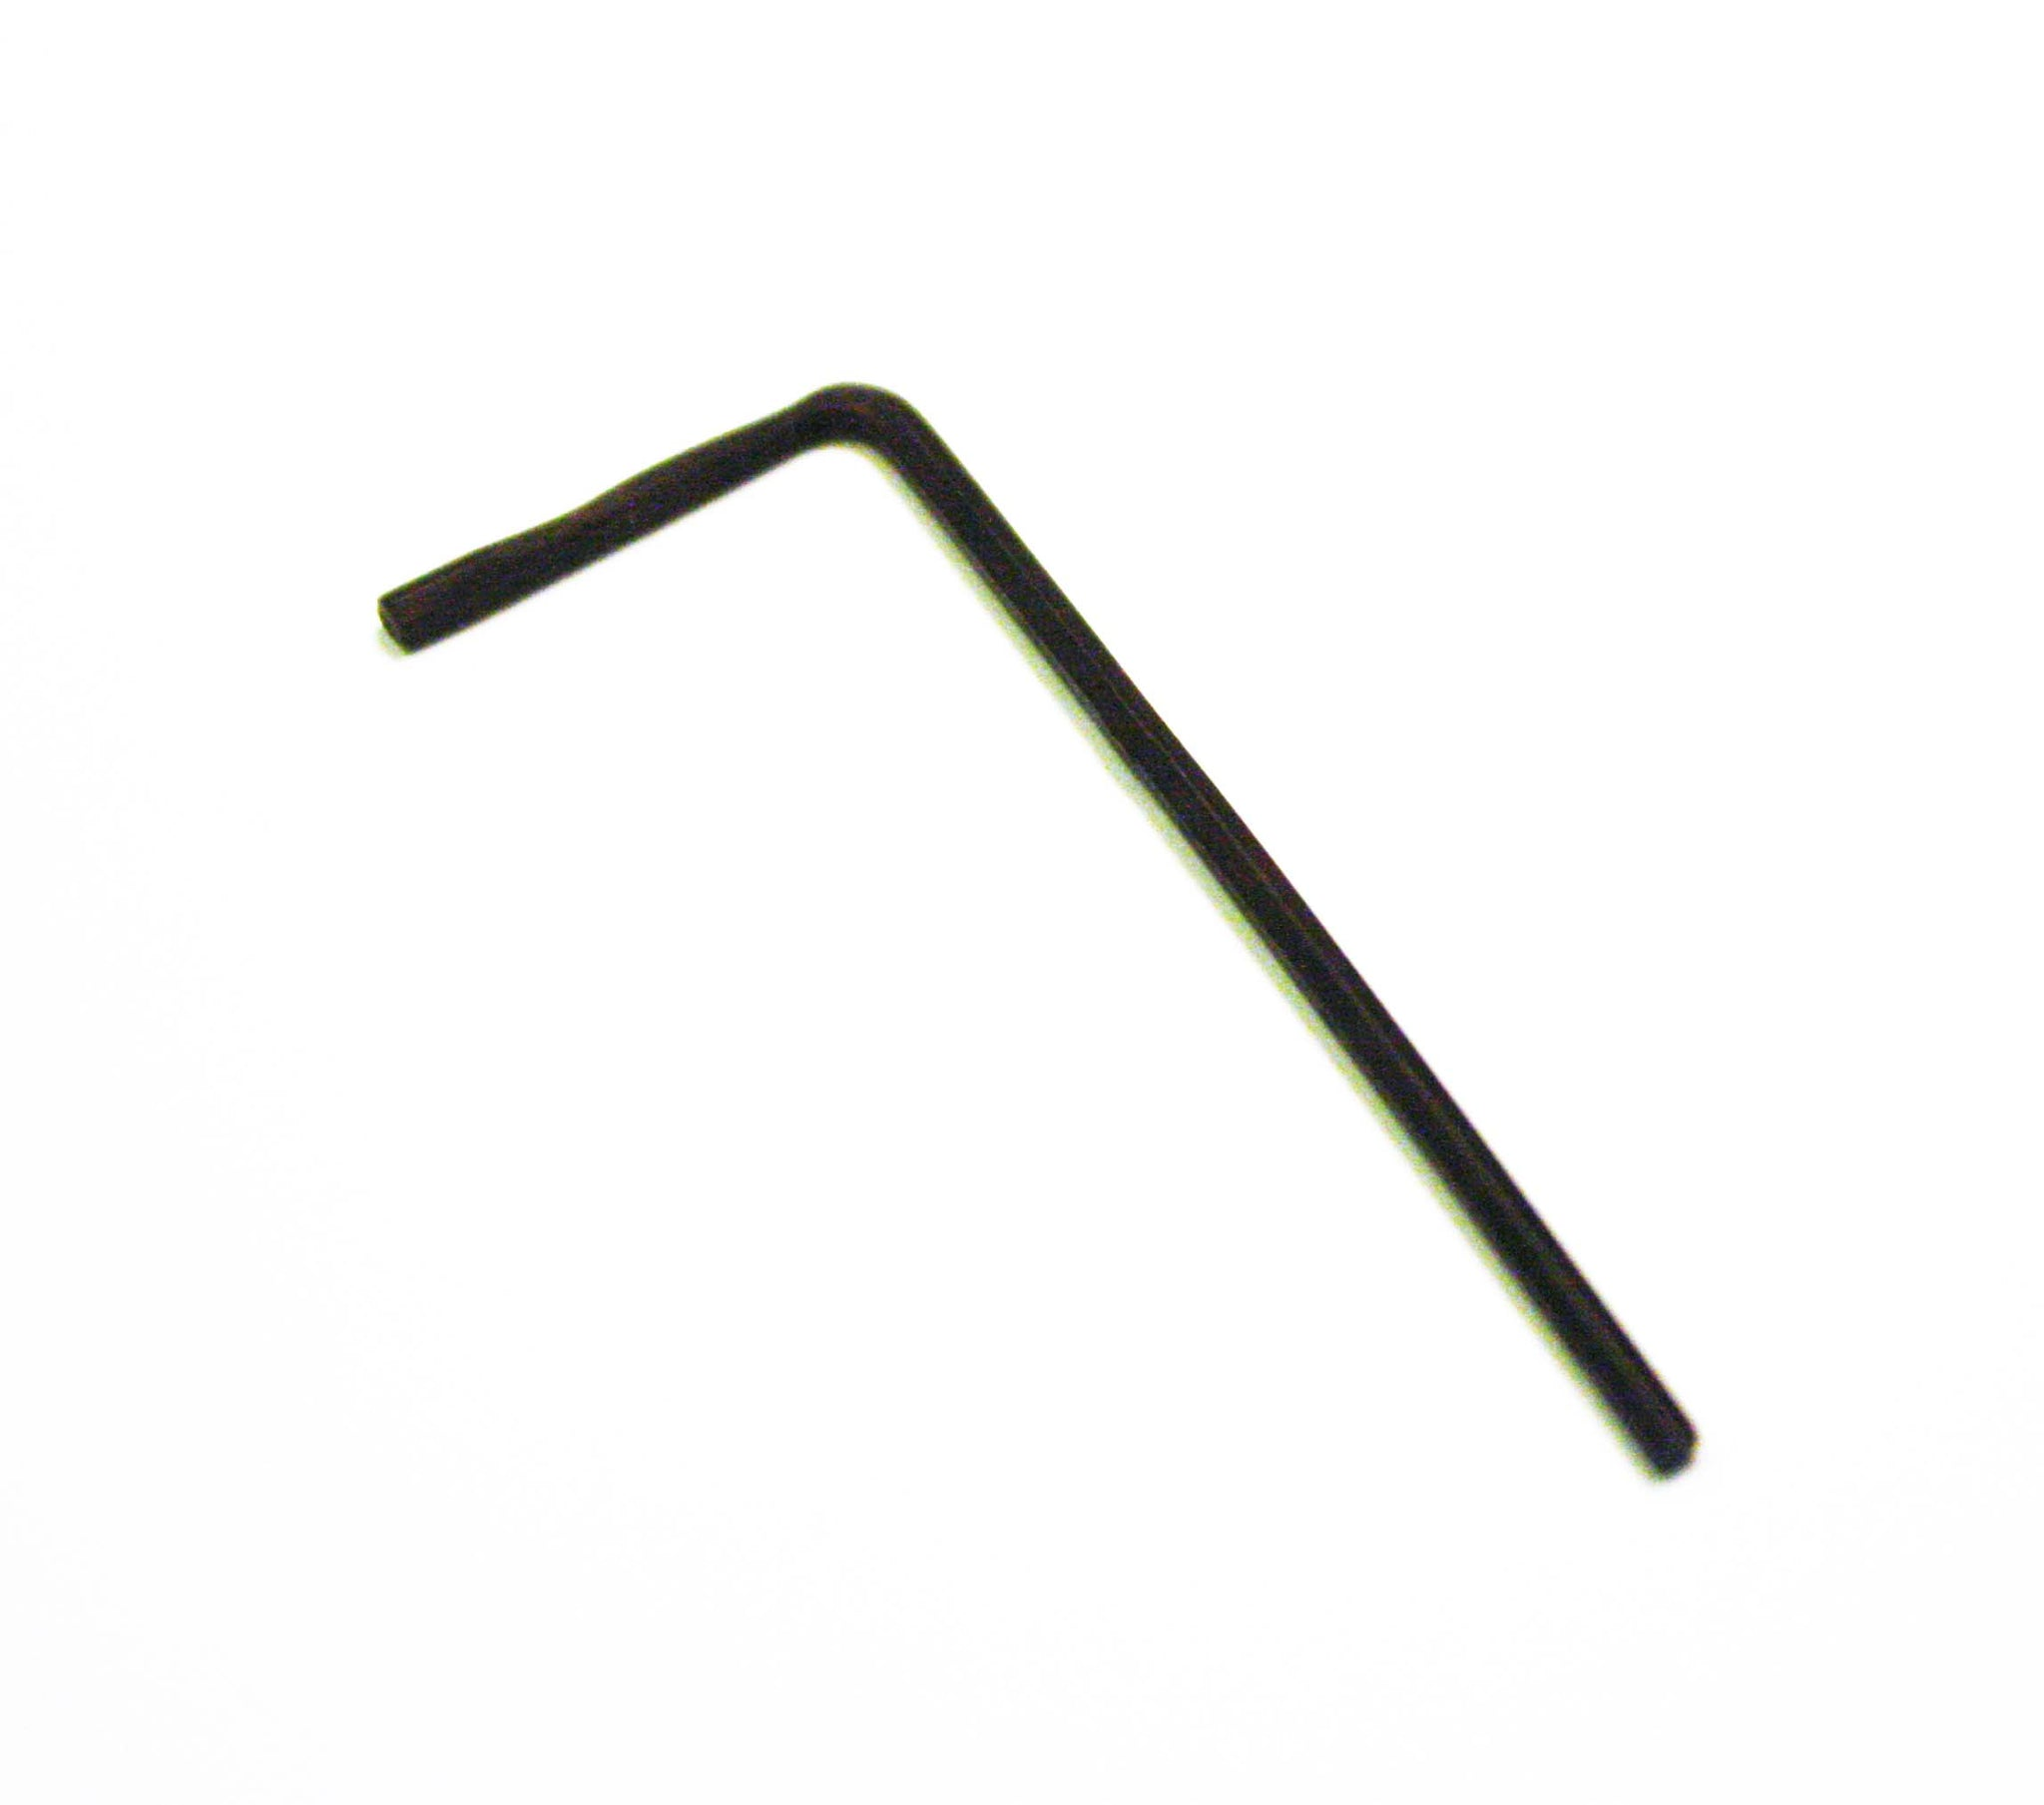 "Allen Wrench, 5/64"" Size"